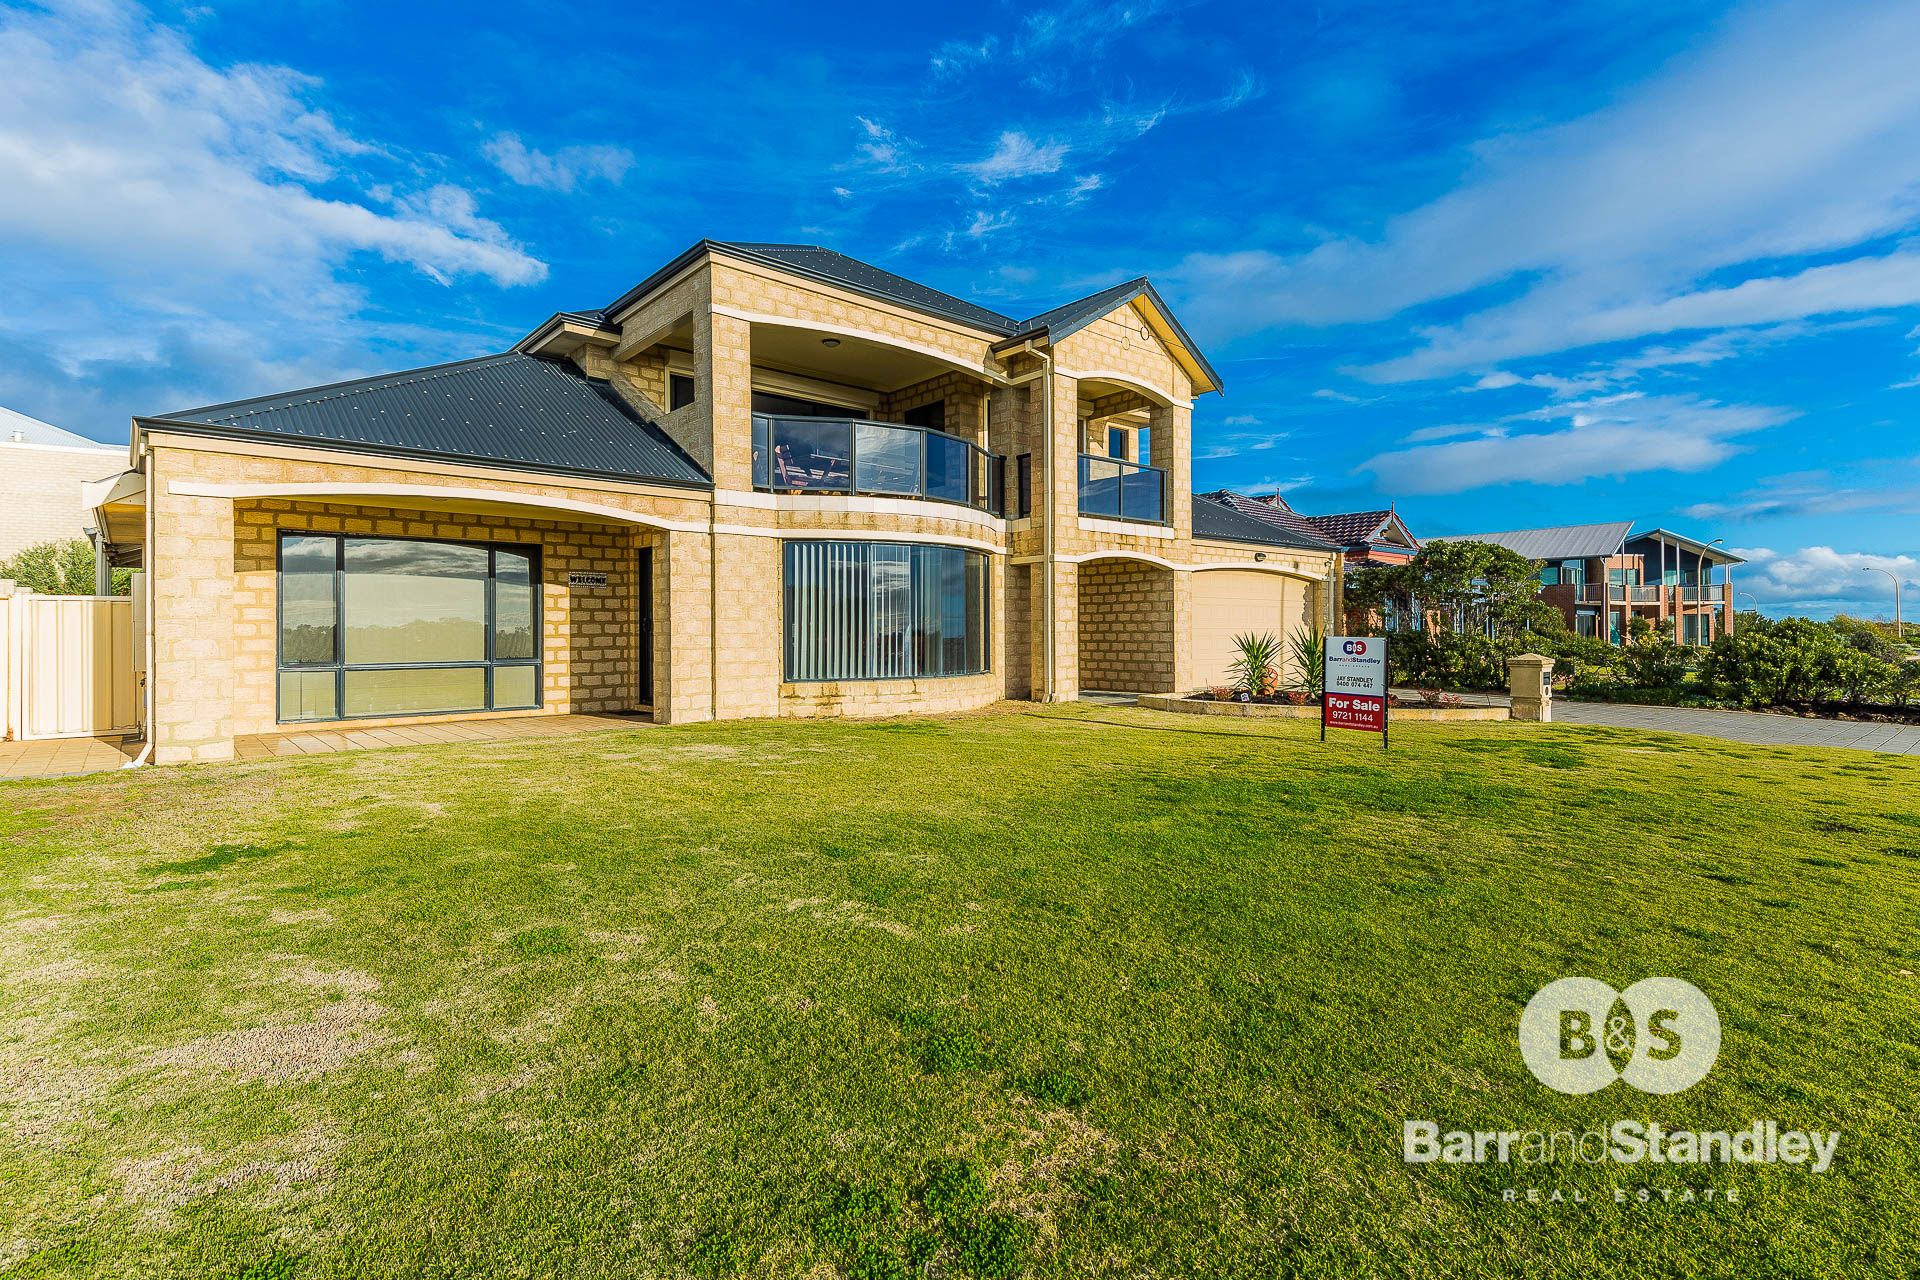 26 Baudin Terrace, Bunbury